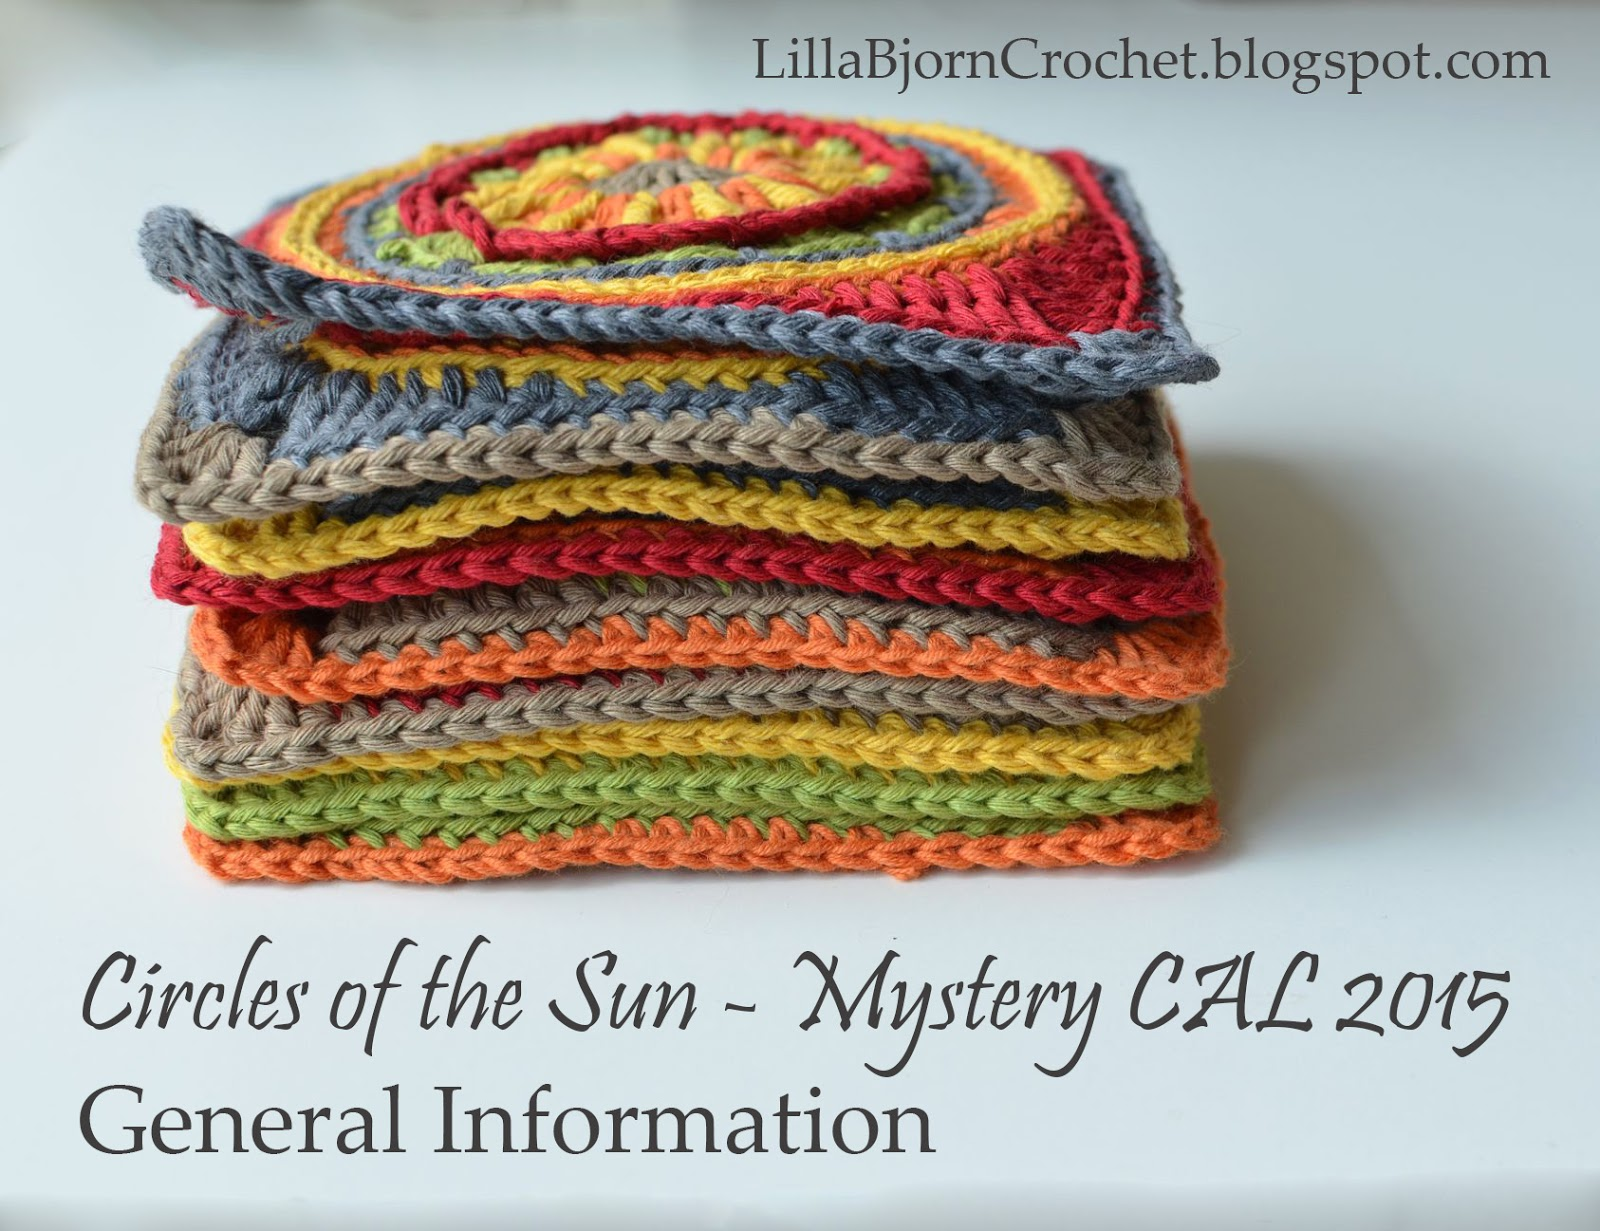 Circles of the Sun Mystery CAL - General Information